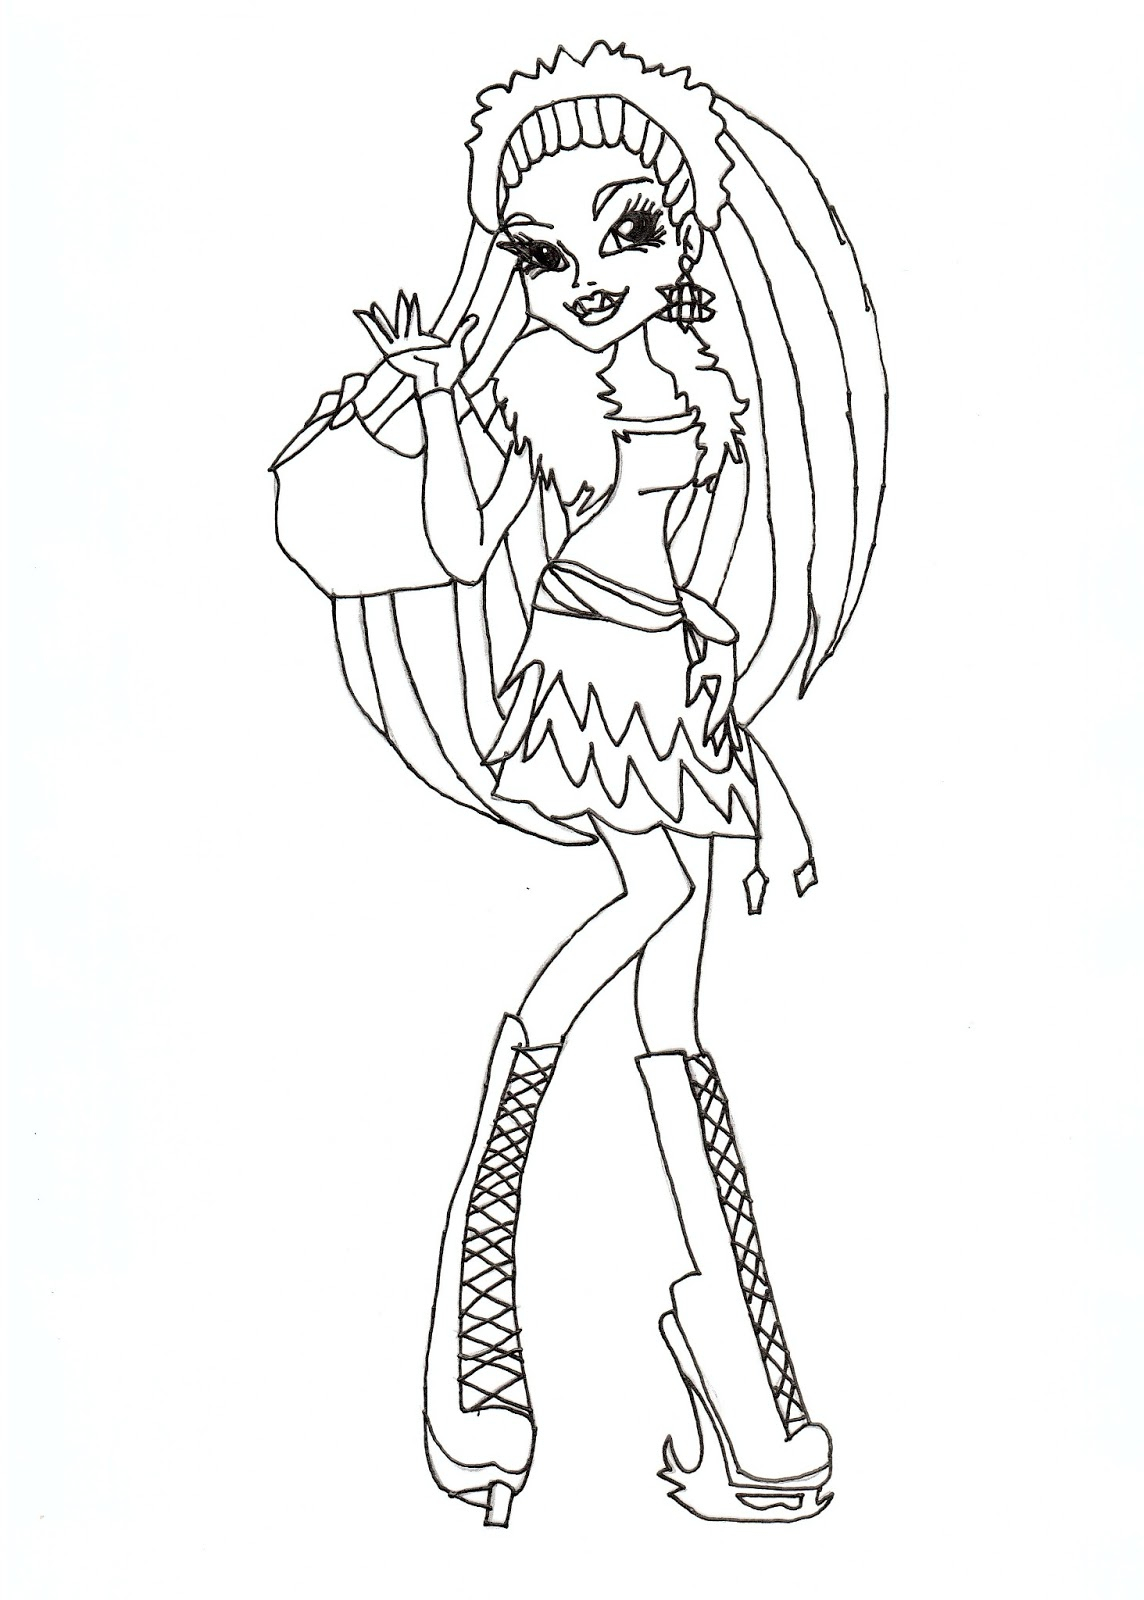 Inspiring Idea Monster High Coloring Pages 2 to Print Color Printable Of Inspiring Monster High Coloring Pages Colouring Sheets Printables Gallery